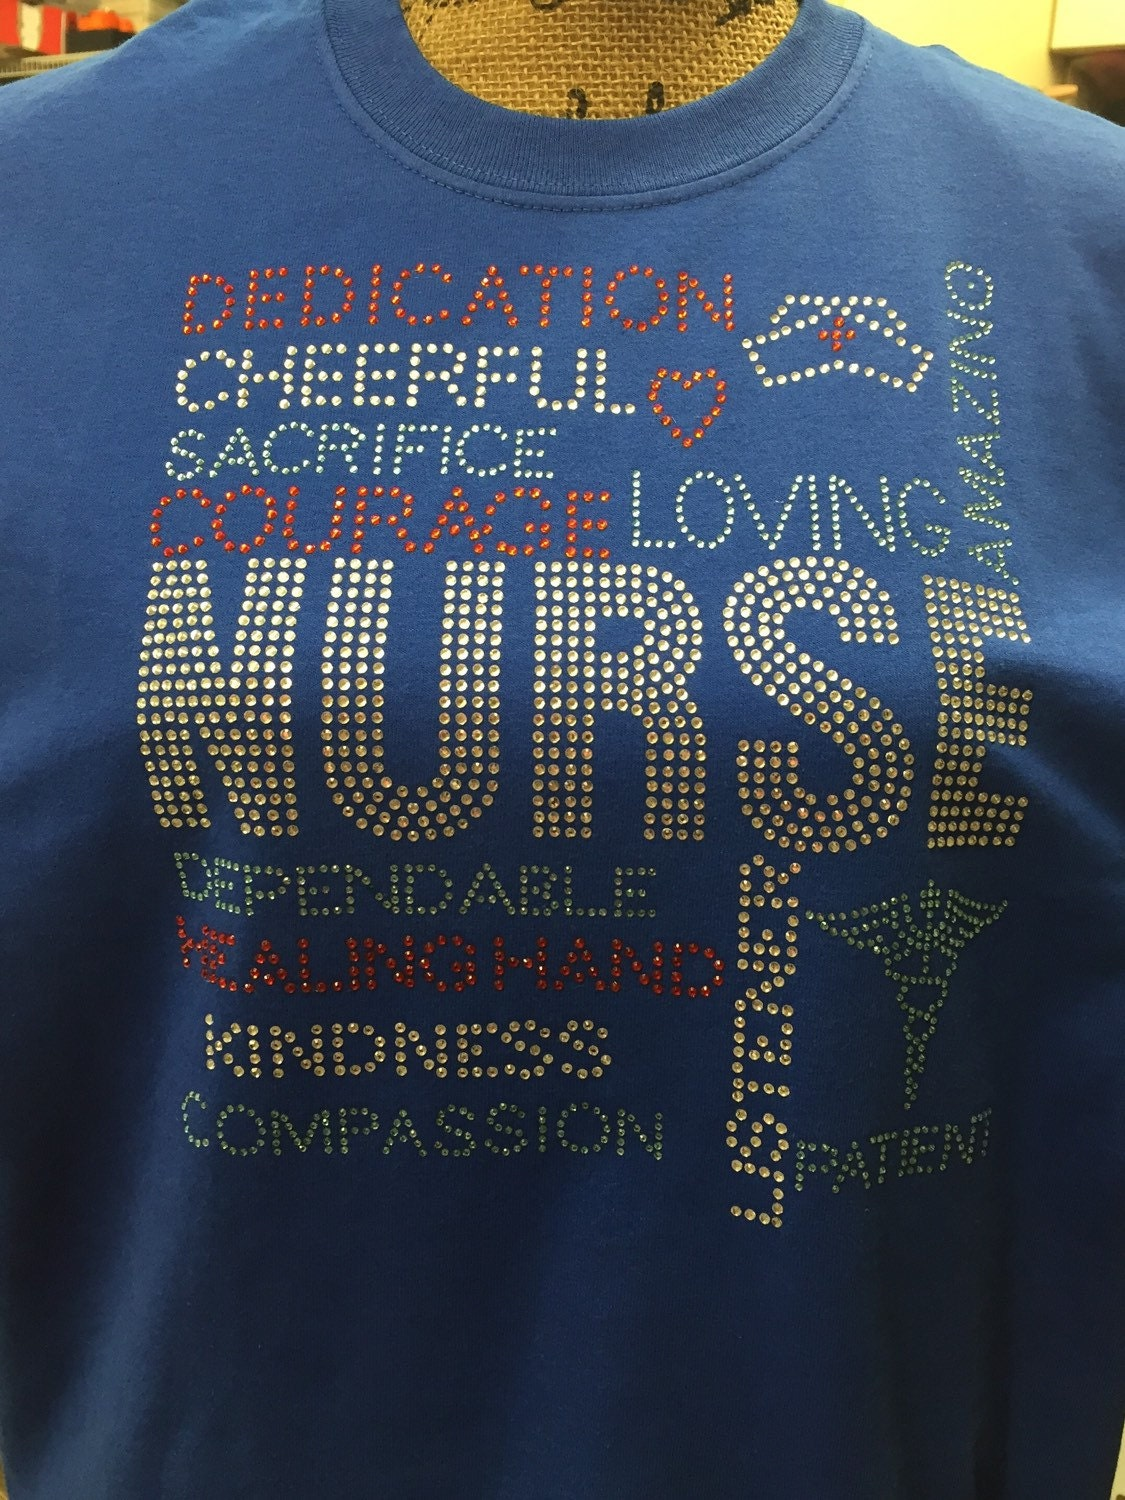 Nurse T Shirt Rhinestone Shirts Custom Nurse T Shirts